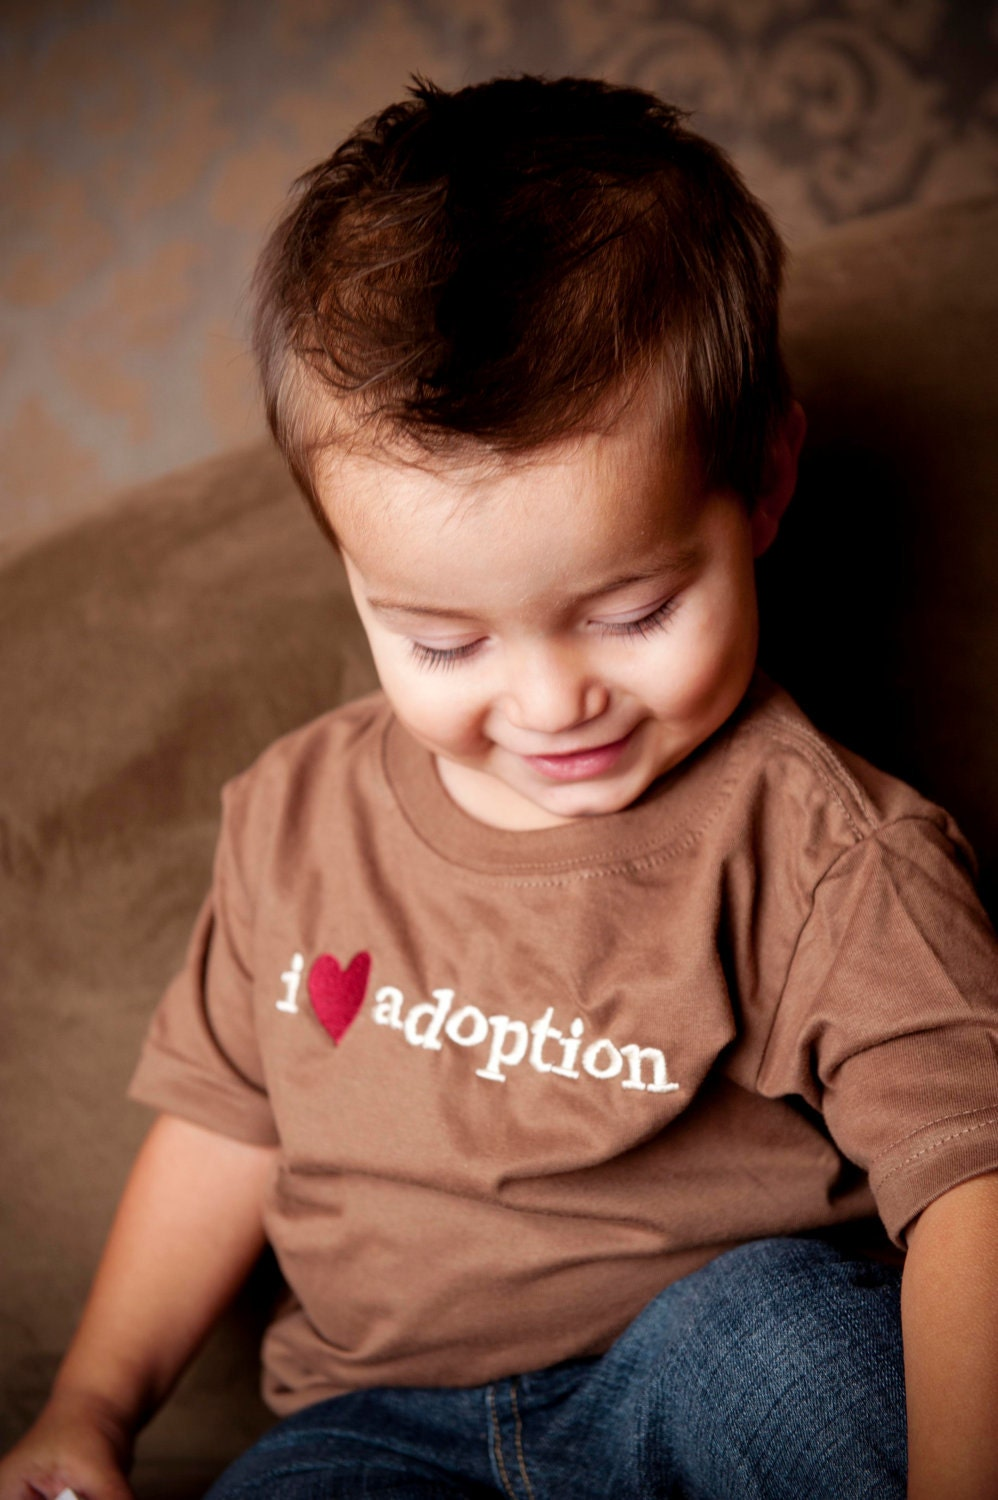 I Heart Adoption Shirt (4T), Adoptions Gifts, Adoption T-Shirts, Birth Mother Gifts, Toddler Adoption T-Shirts